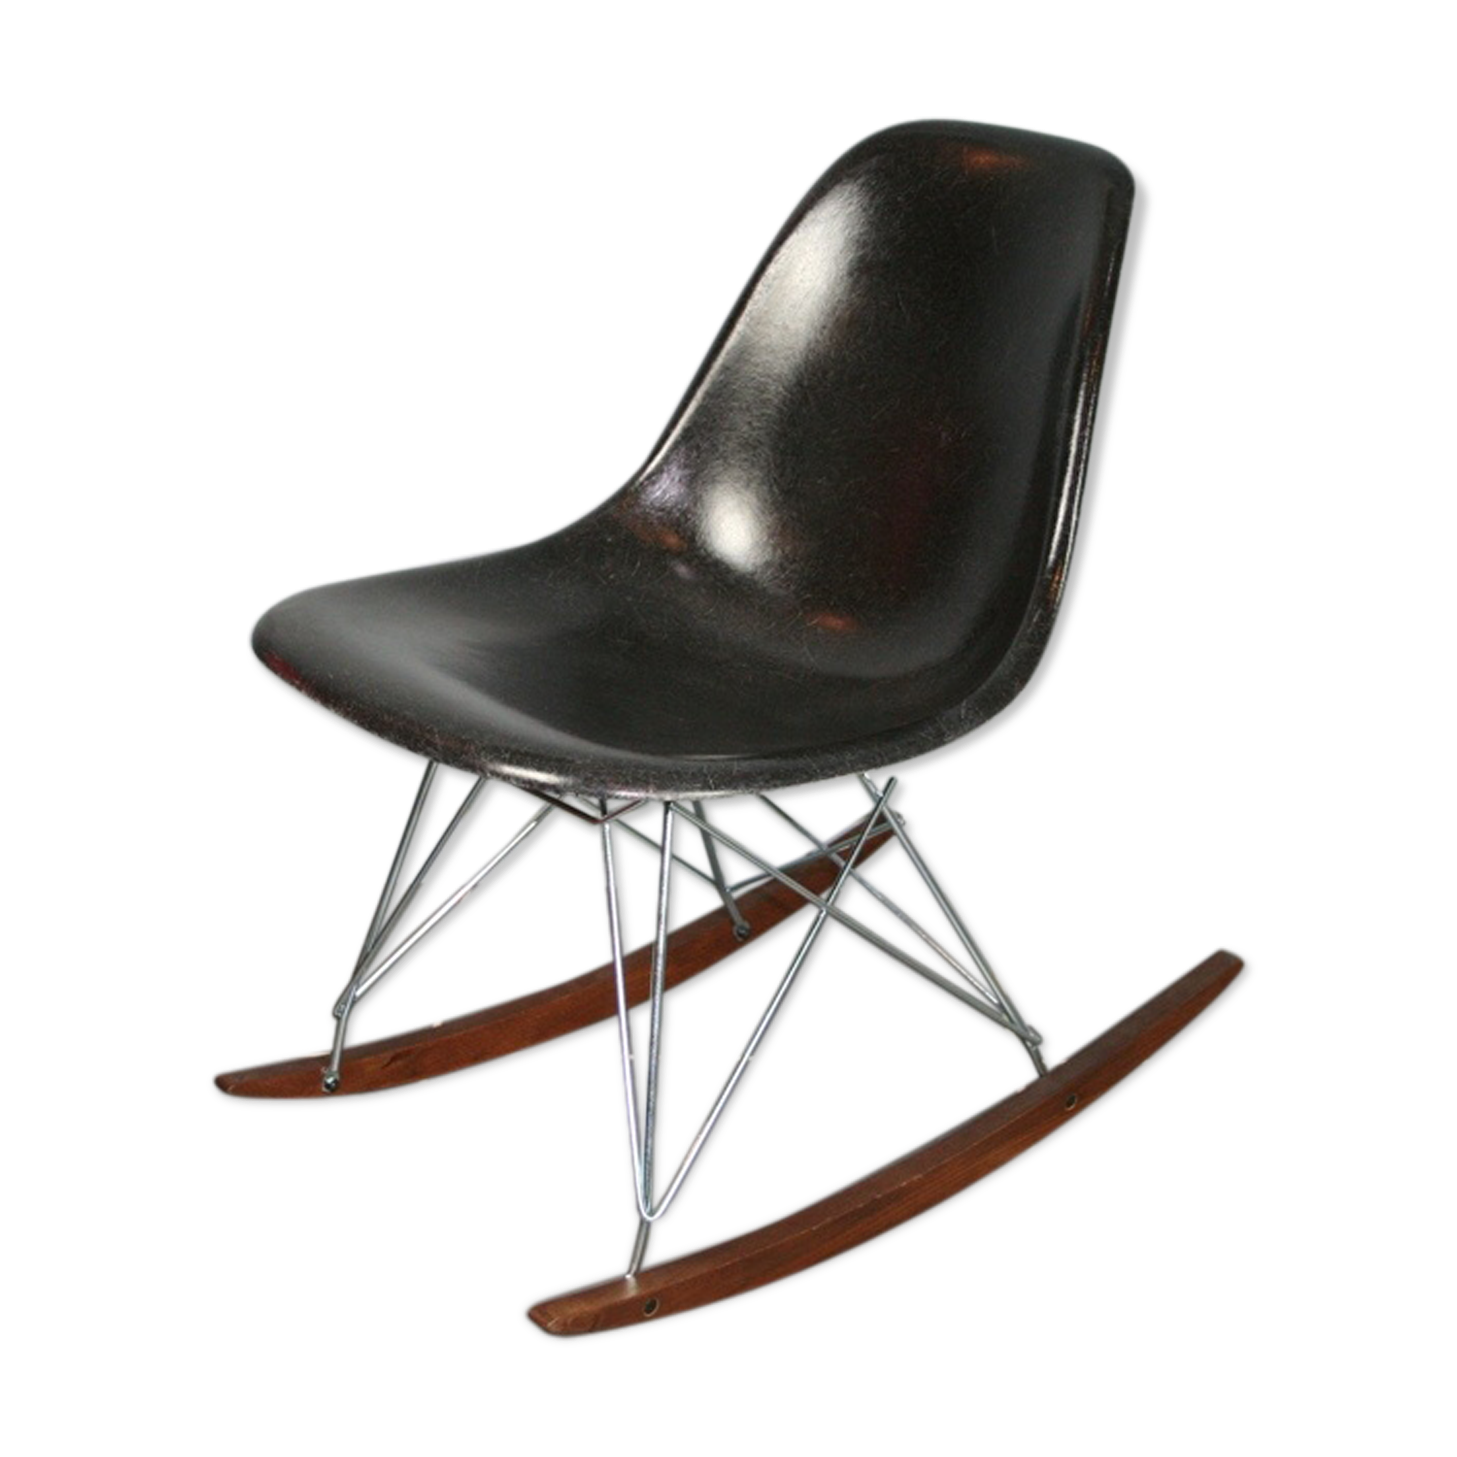 chaise a bascule eames good eames des chutes de poutres. Black Bedroom Furniture Sets. Home Design Ideas